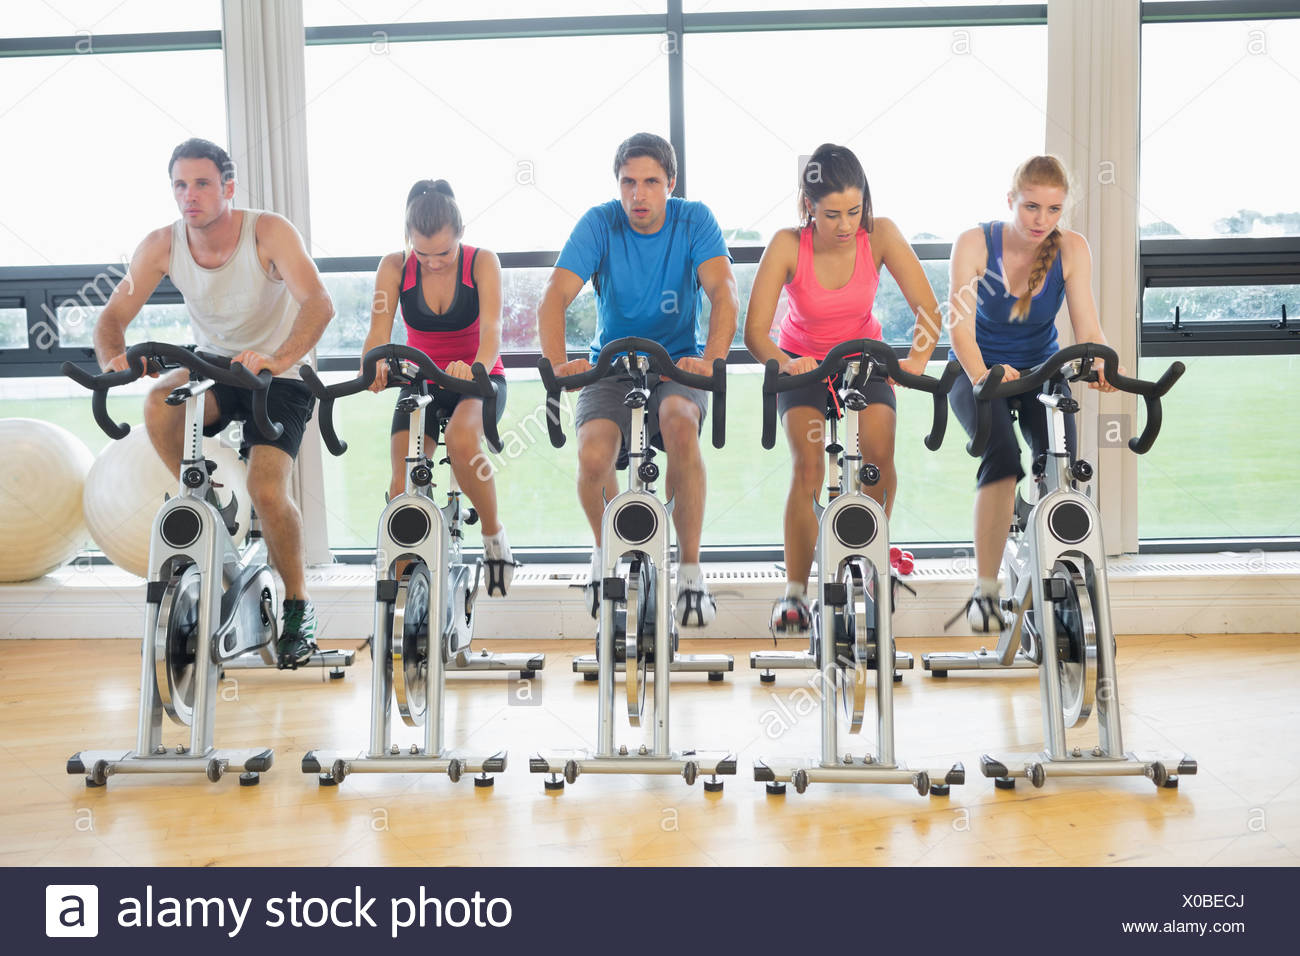 Determined people working out at spinning class in gym Stock Photo